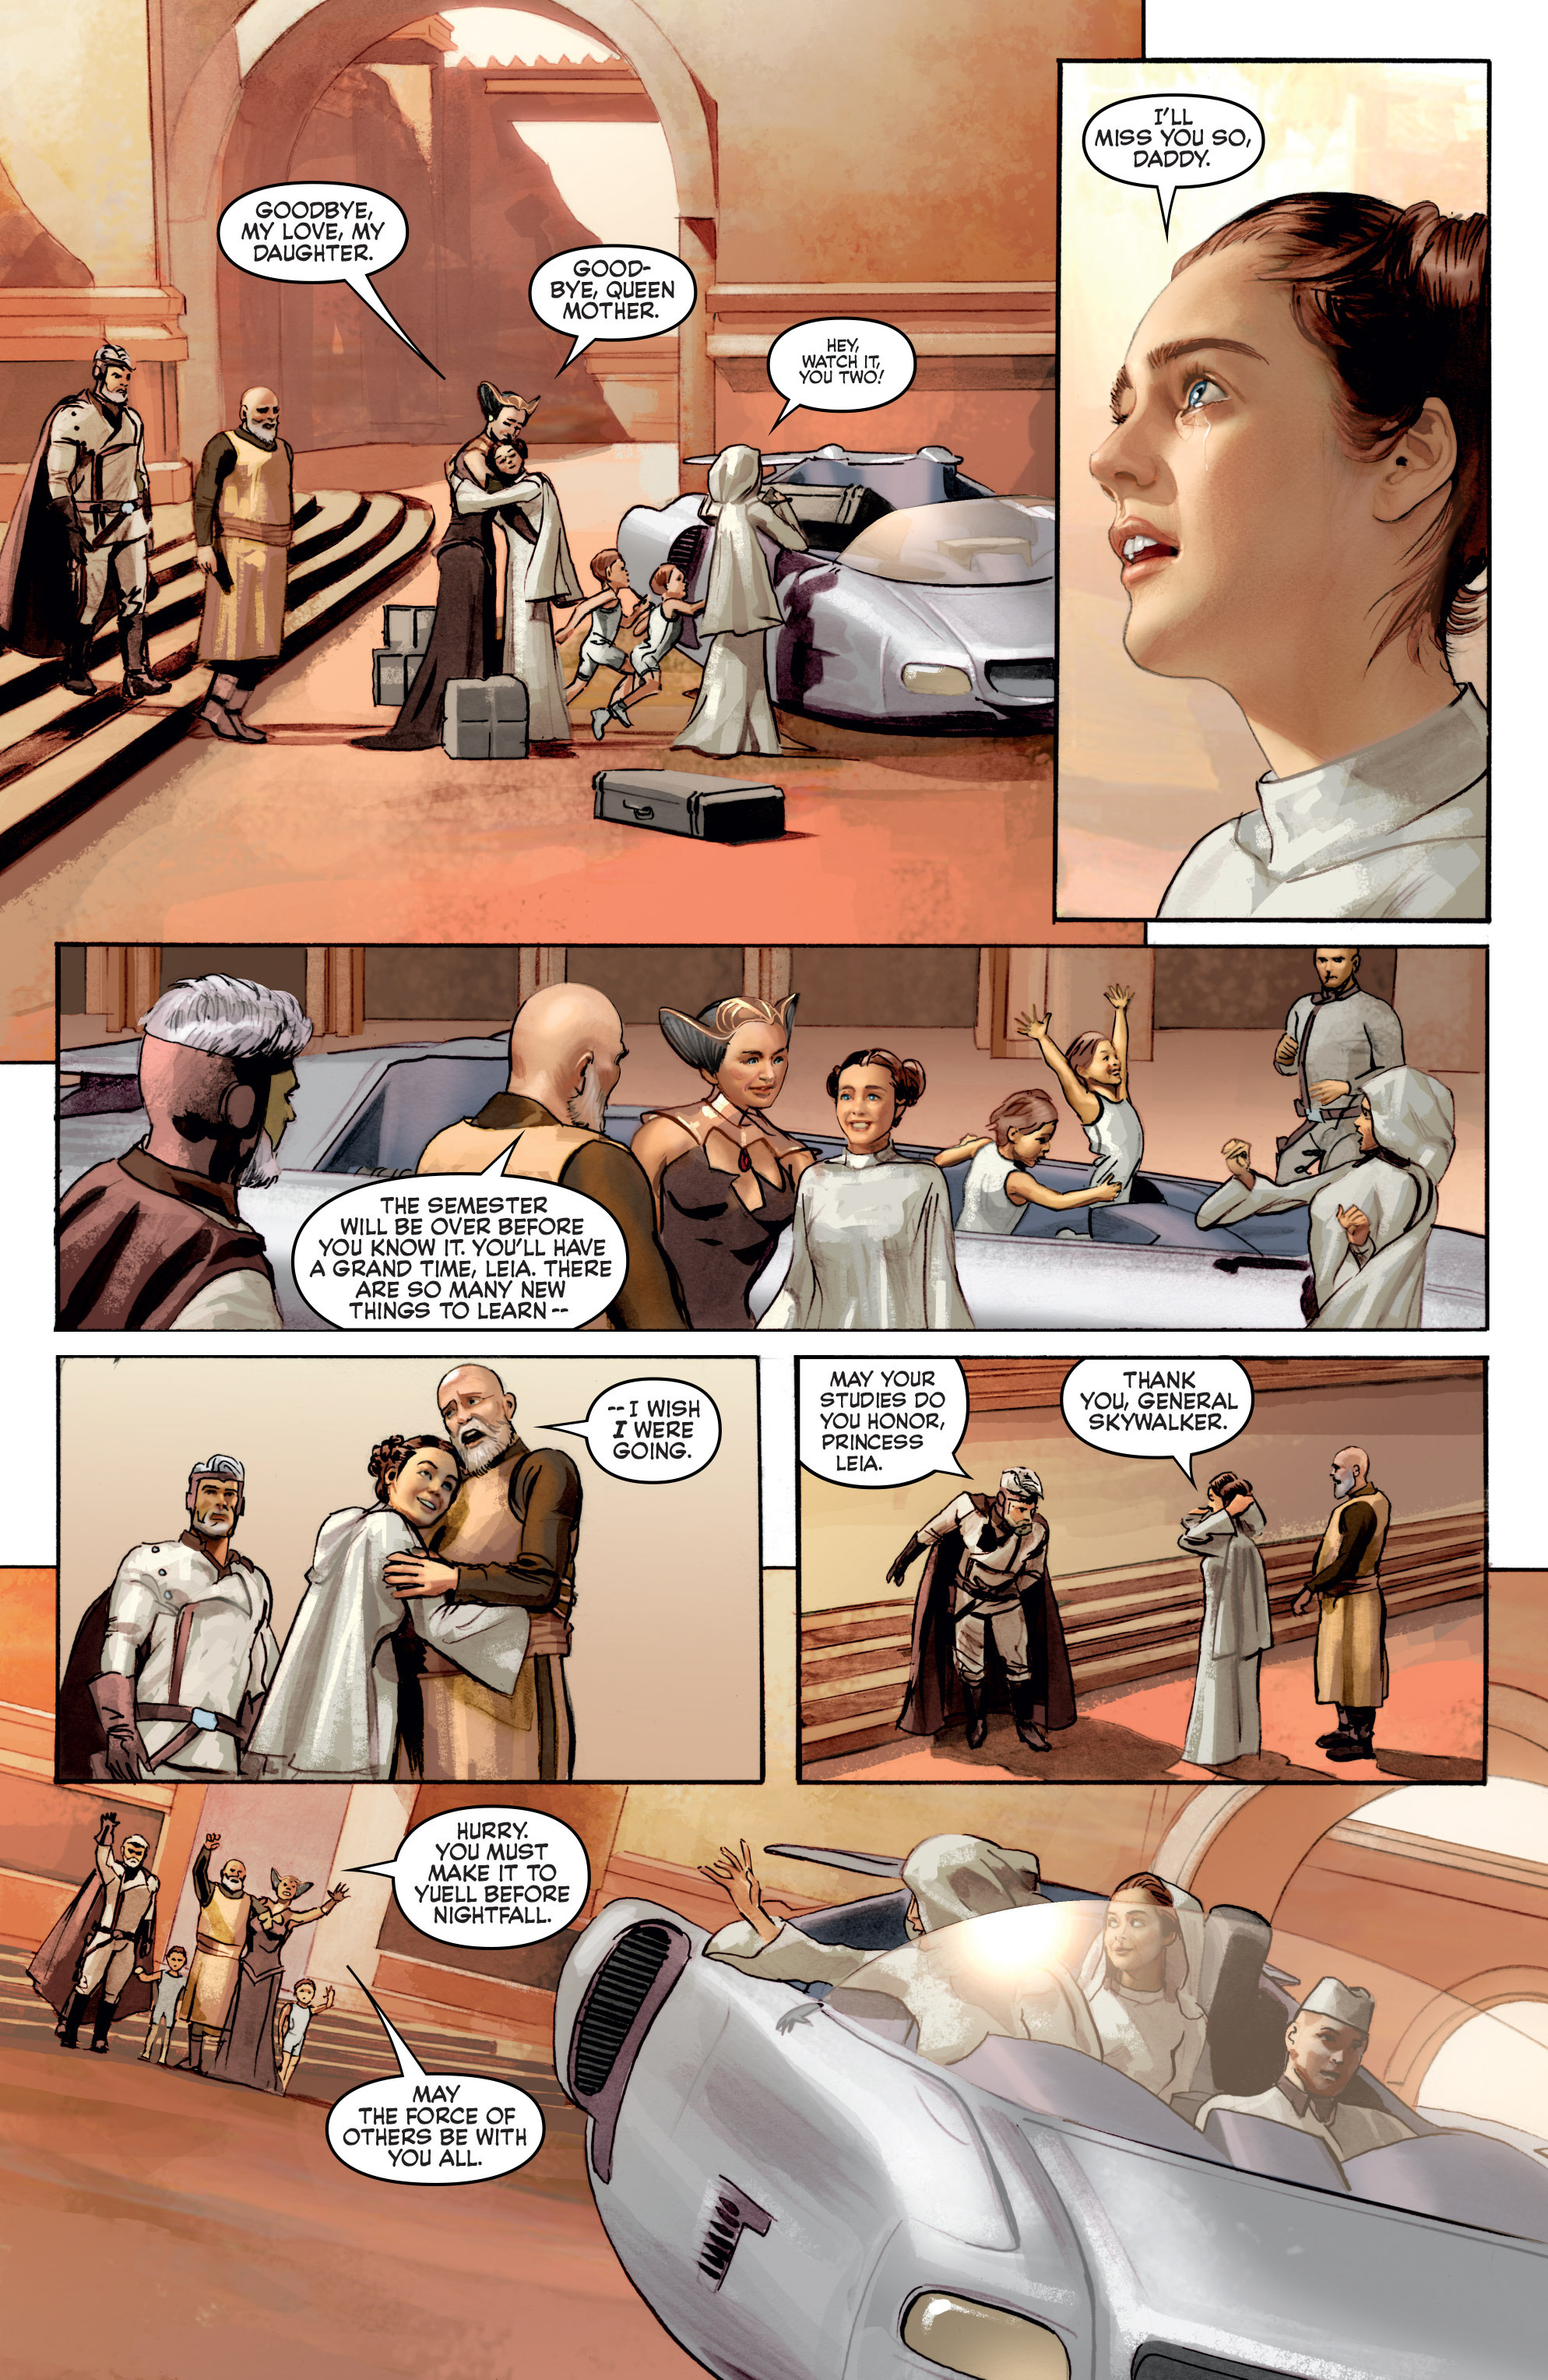 THE STAR WARS comic (2015, Marvel edition) Vol.2